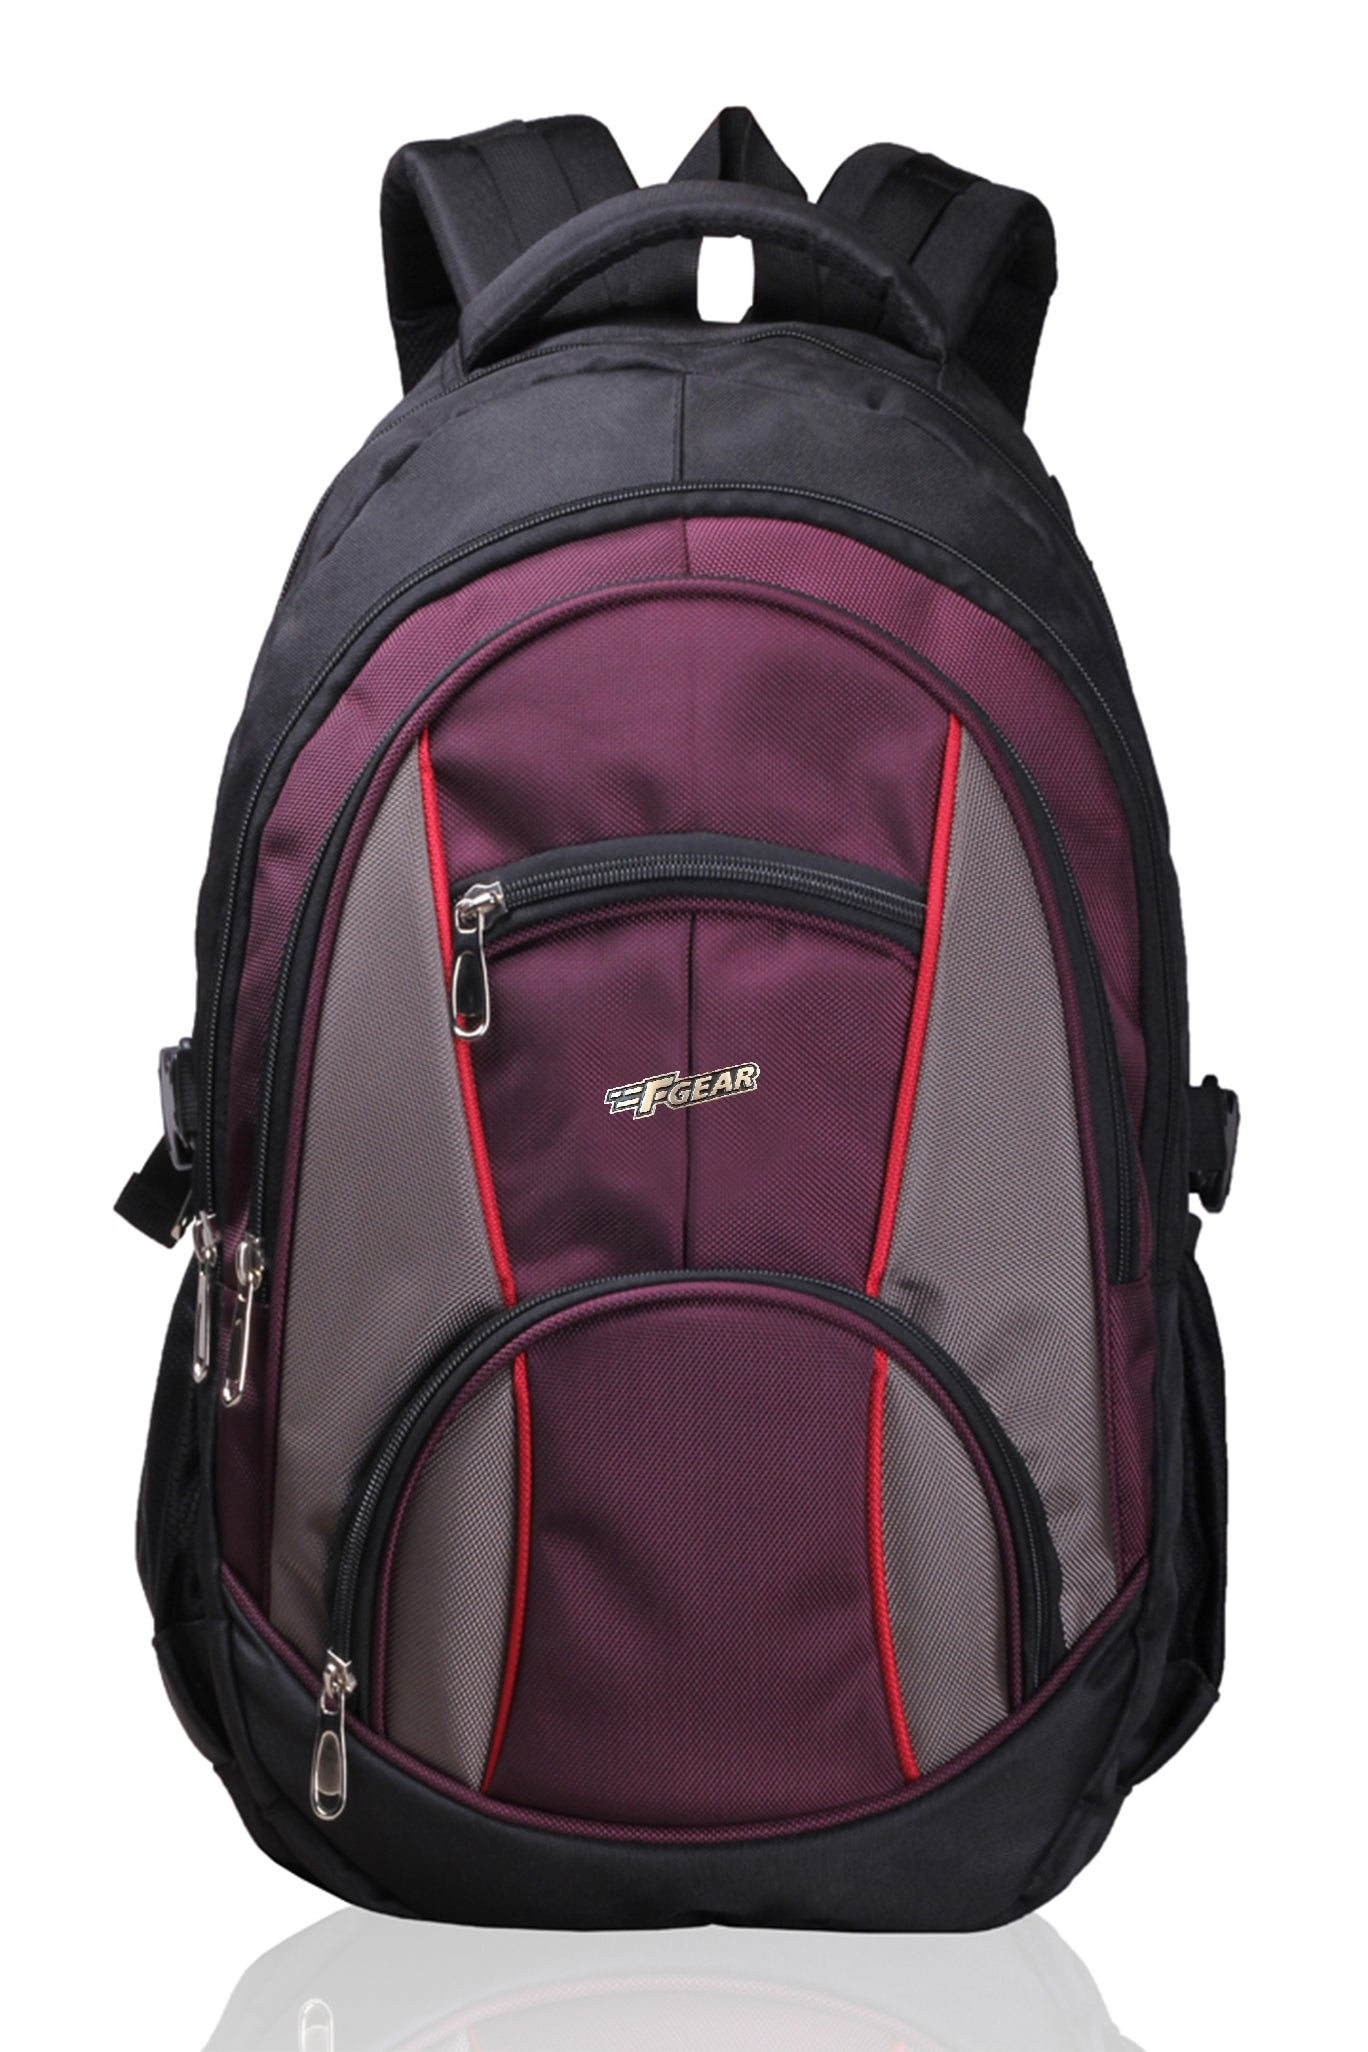 F Gear Midus 29 Ltrs Backpack (Black, Wine)